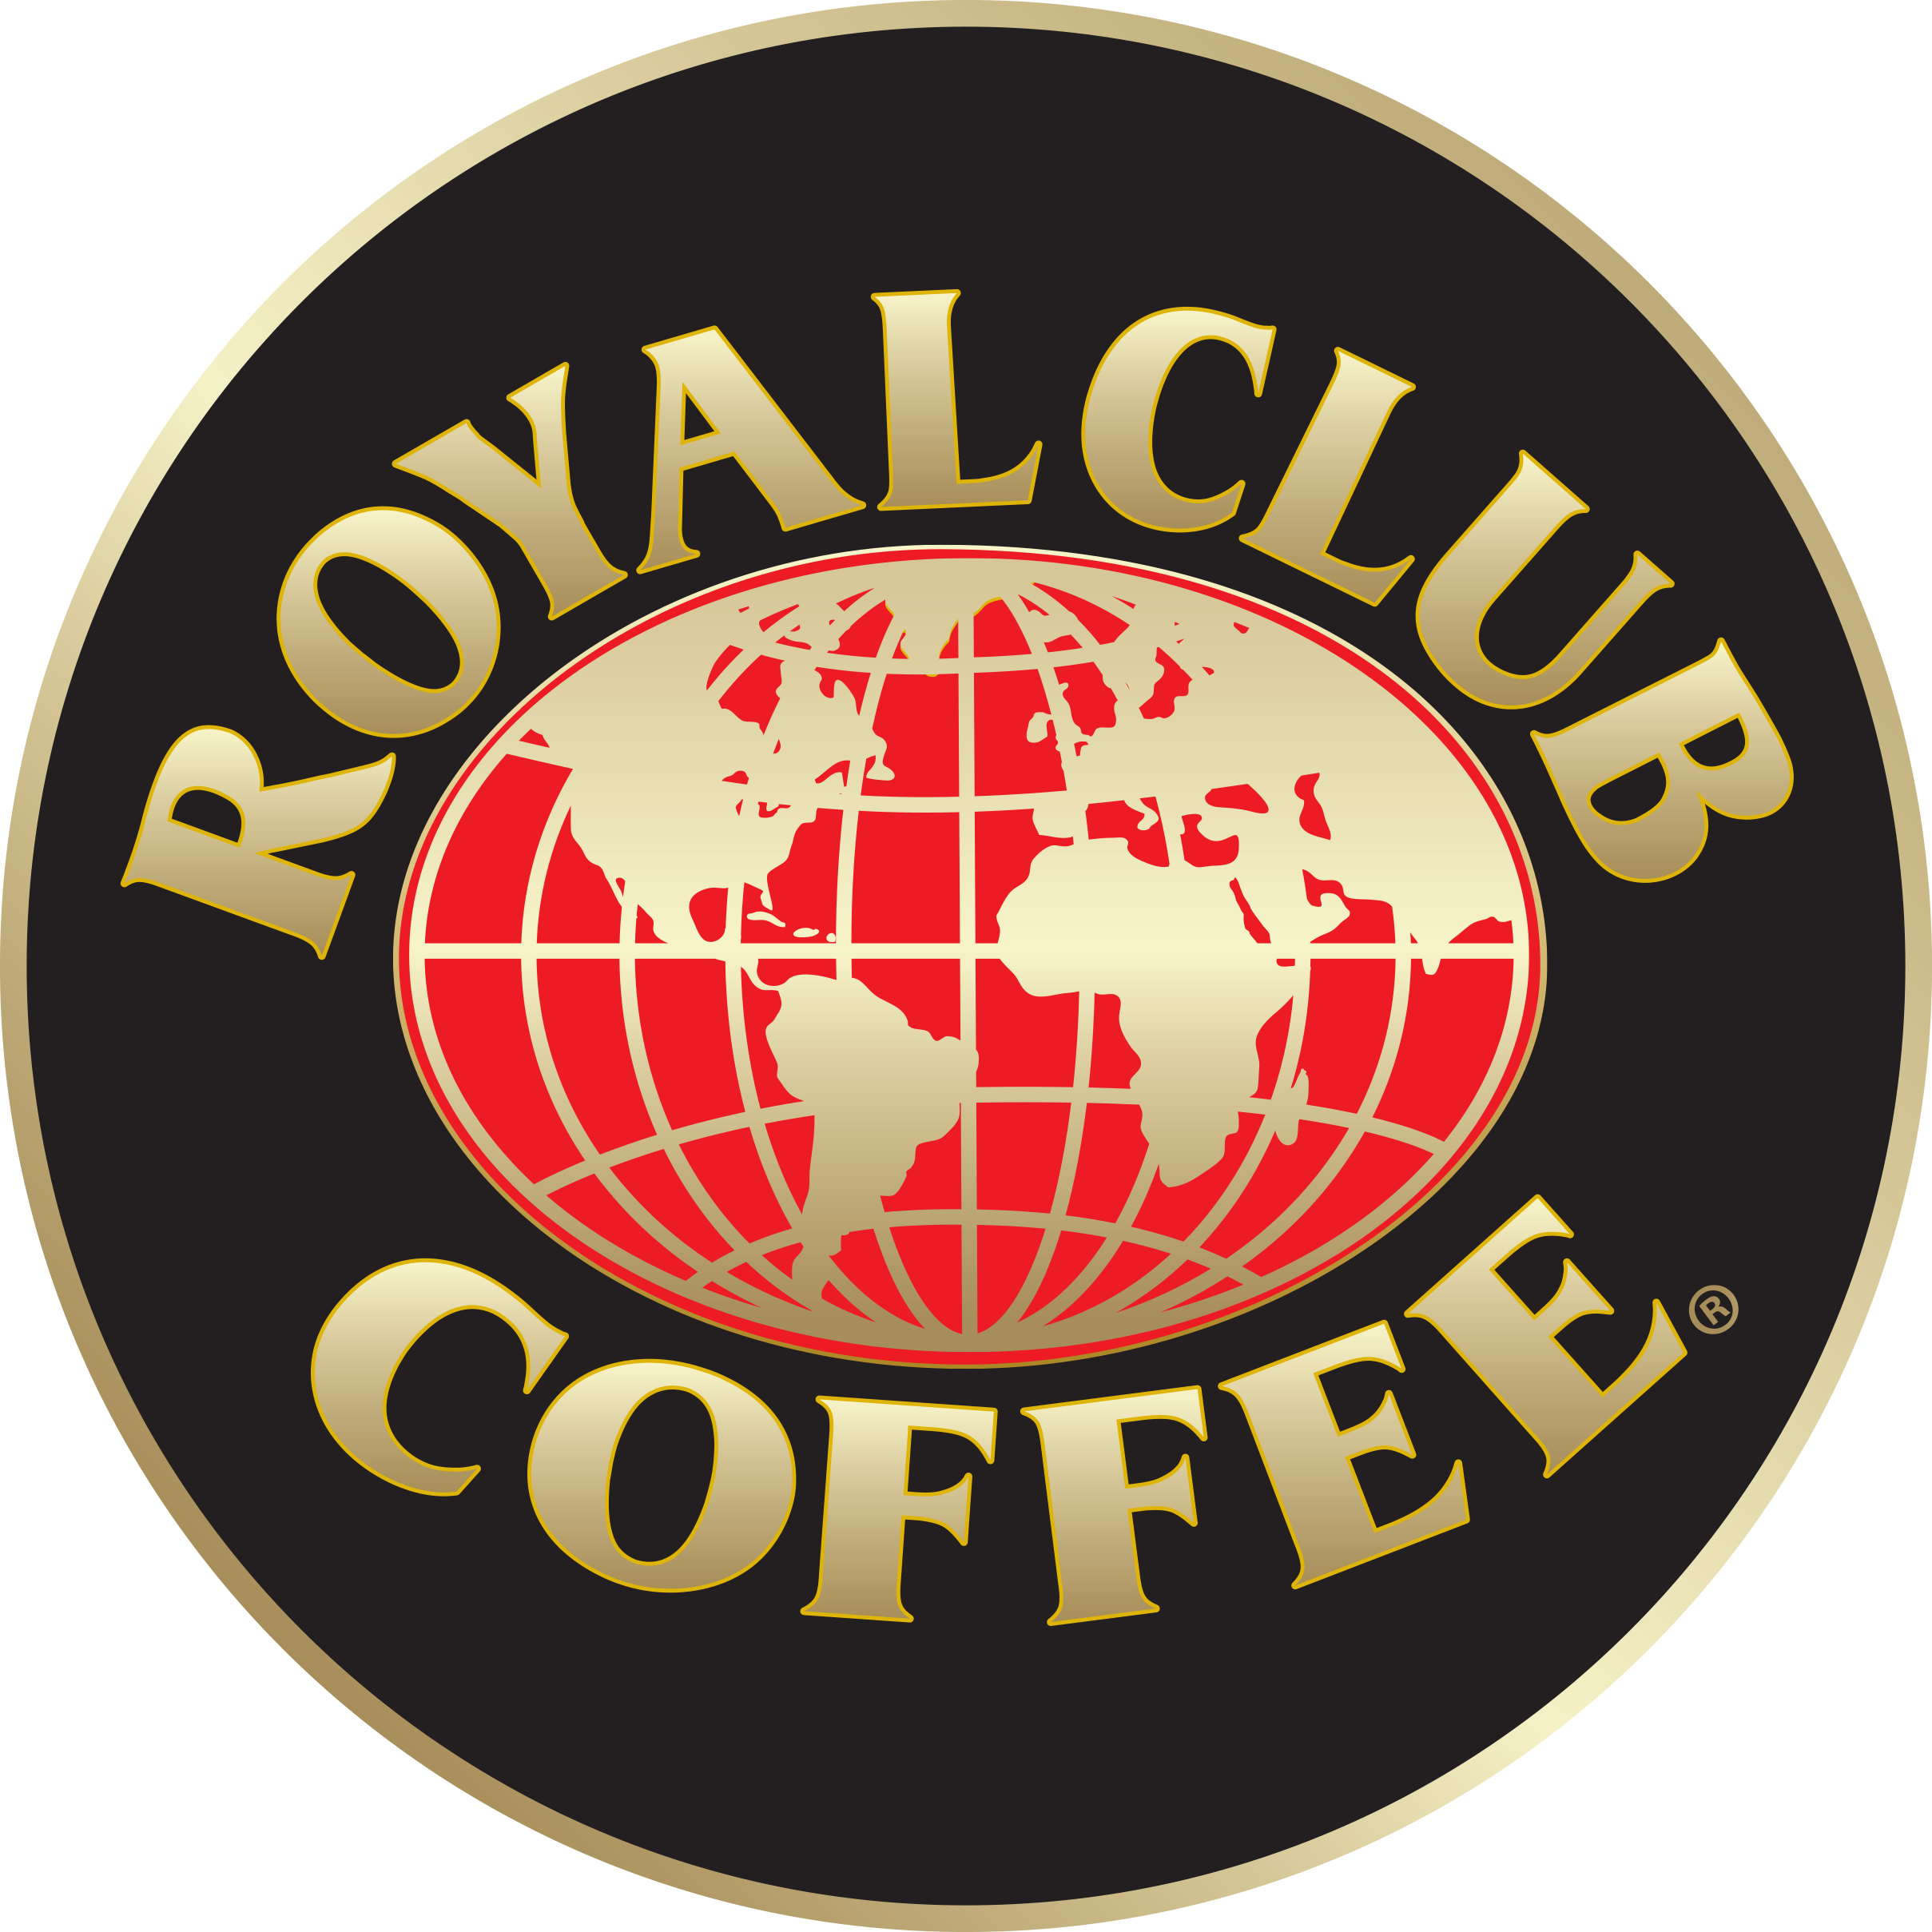 Royal Club Coffee